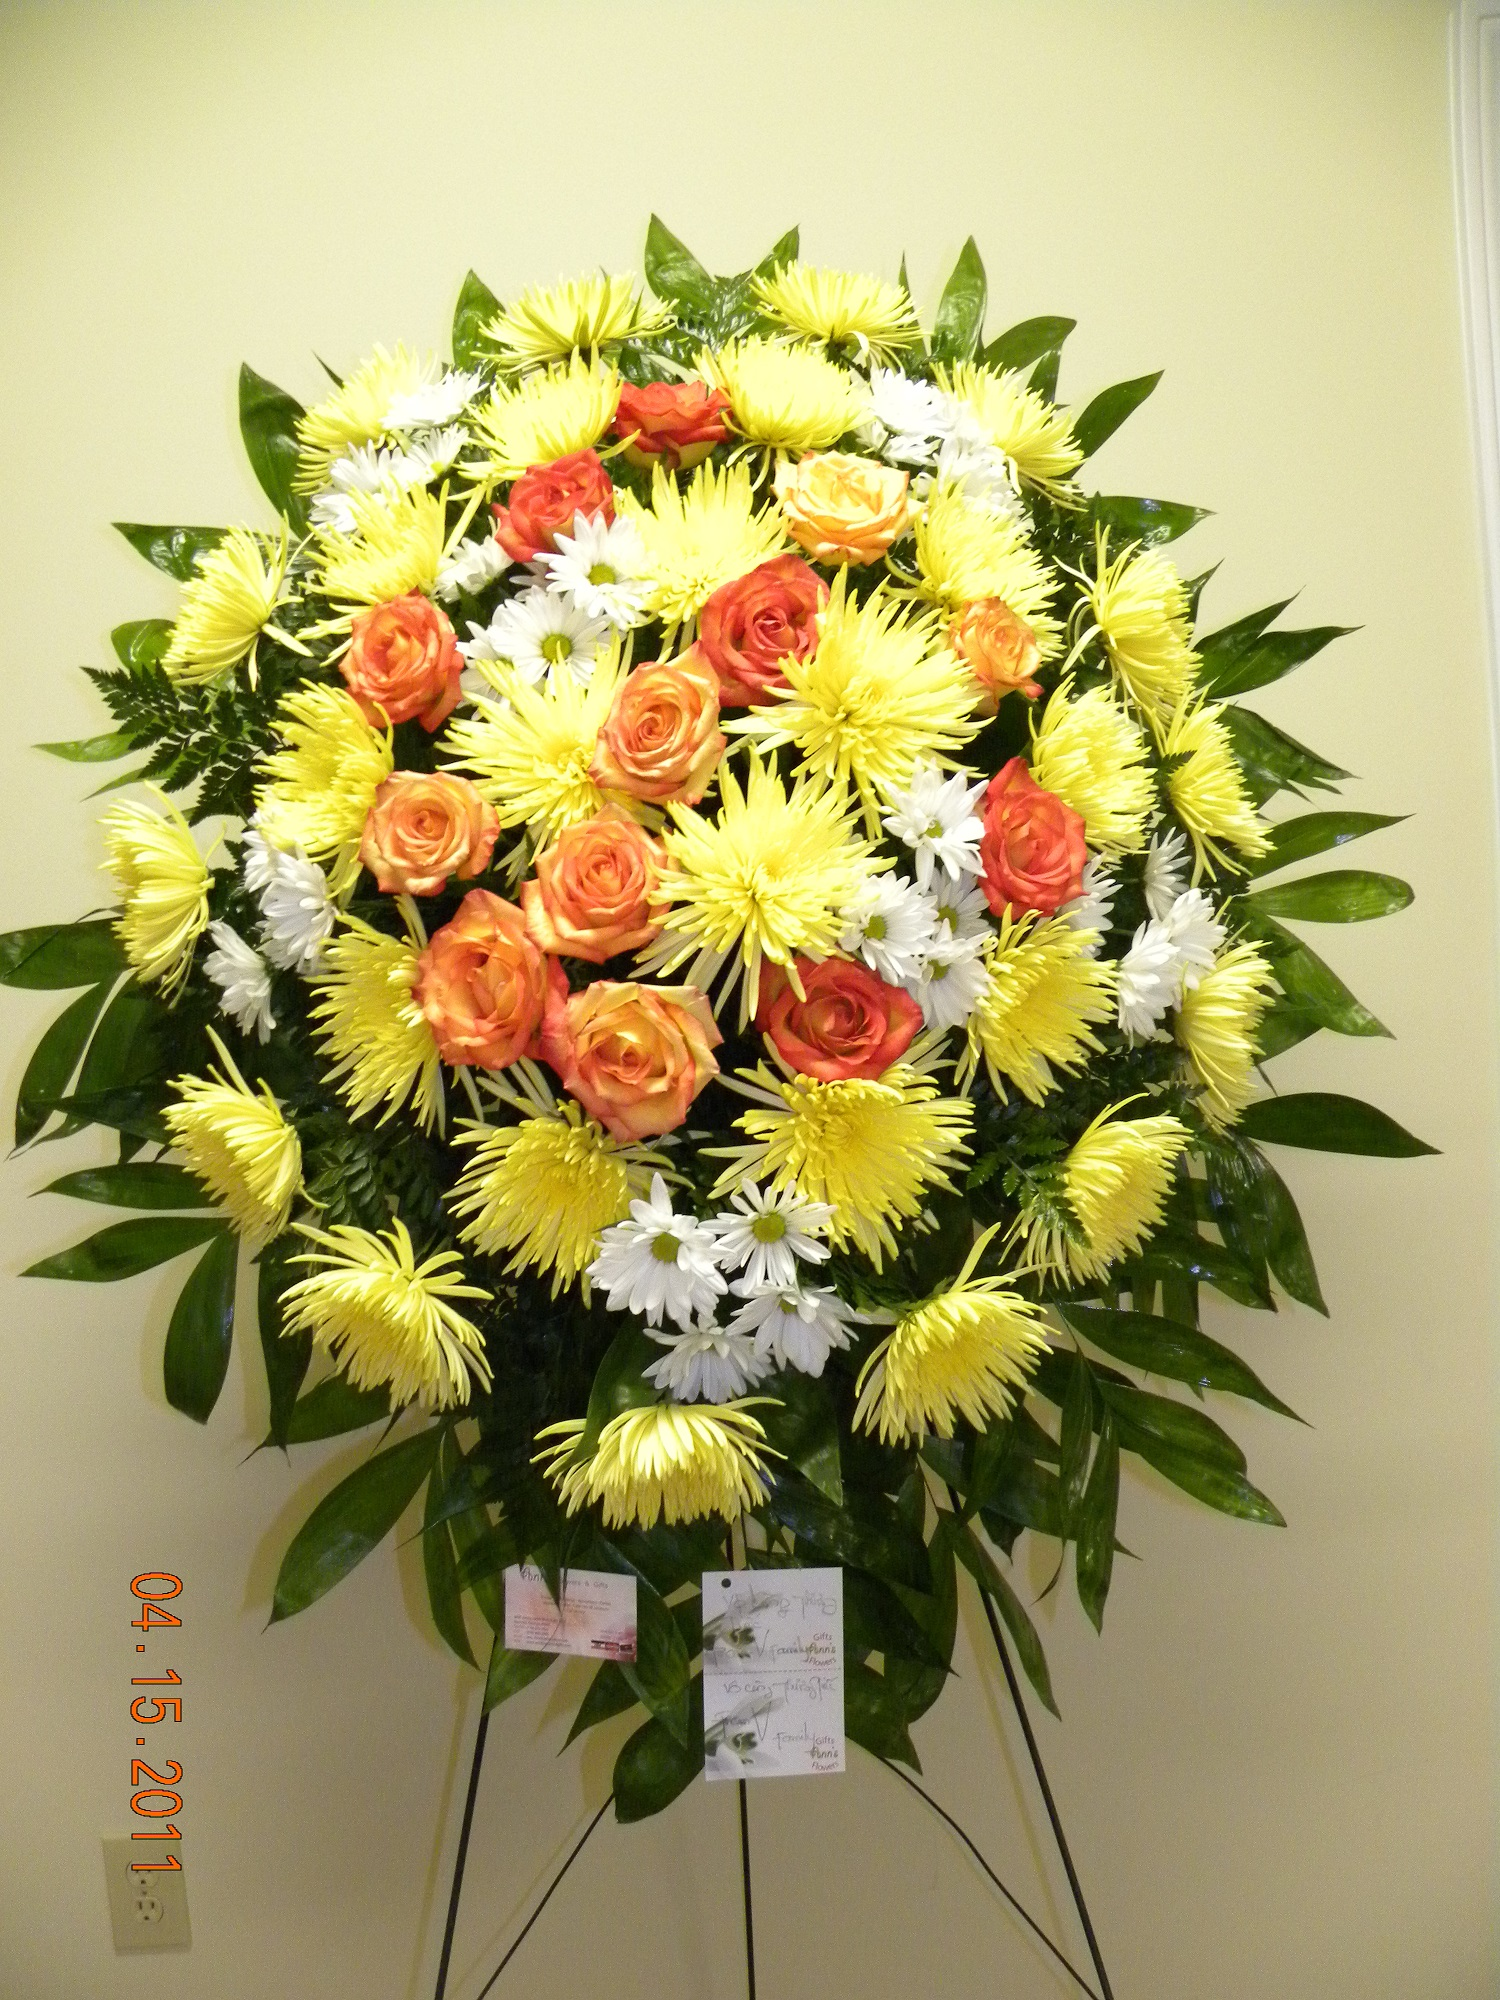 Bfdd anns flowers and gifts online store powered by storenvy bfdd izmirmasajfo